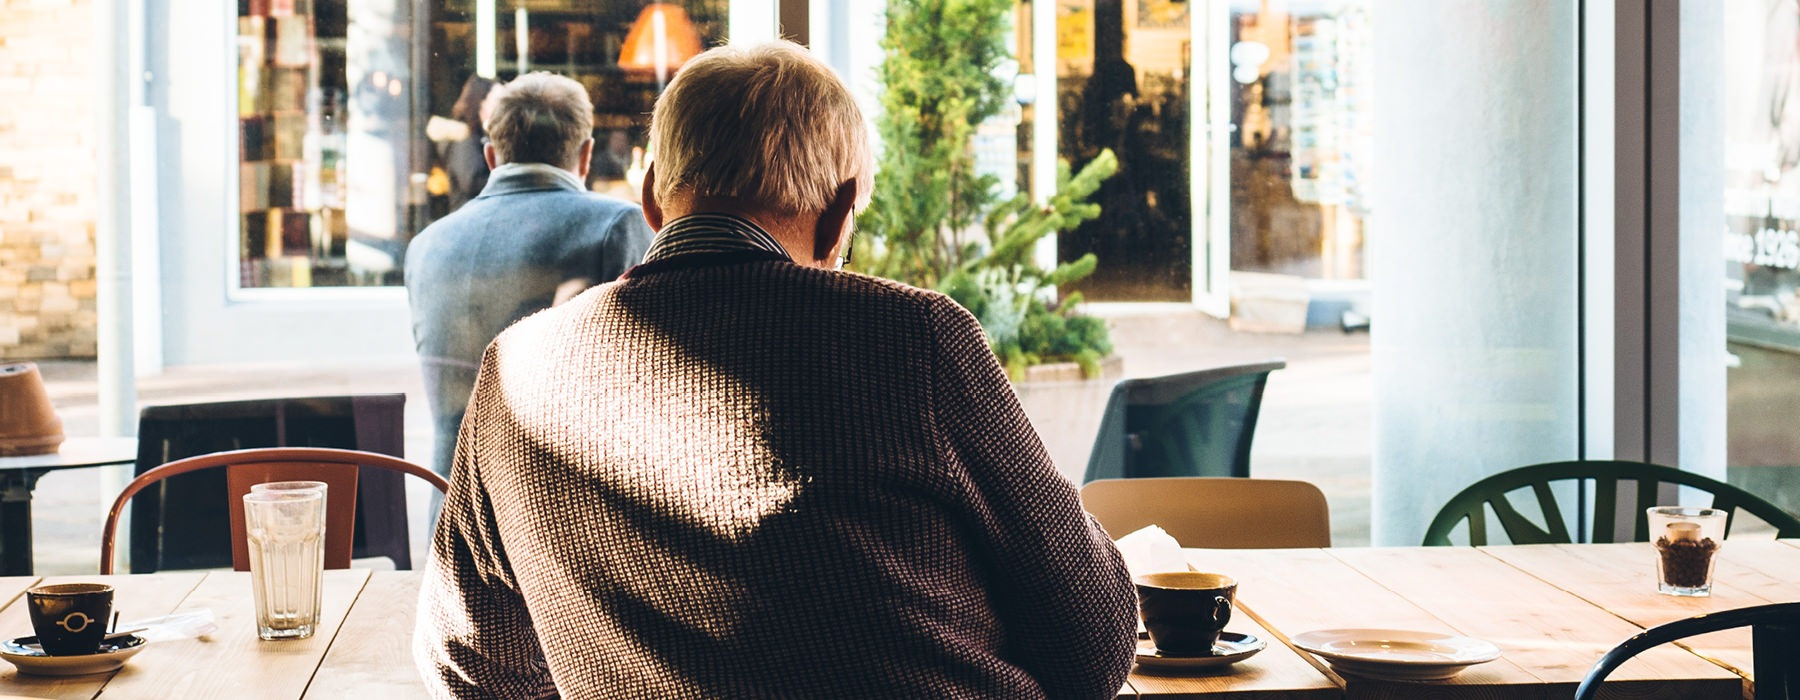 A café with large window. One elderly man sits alone, inside while another sits alone, at table, outside.